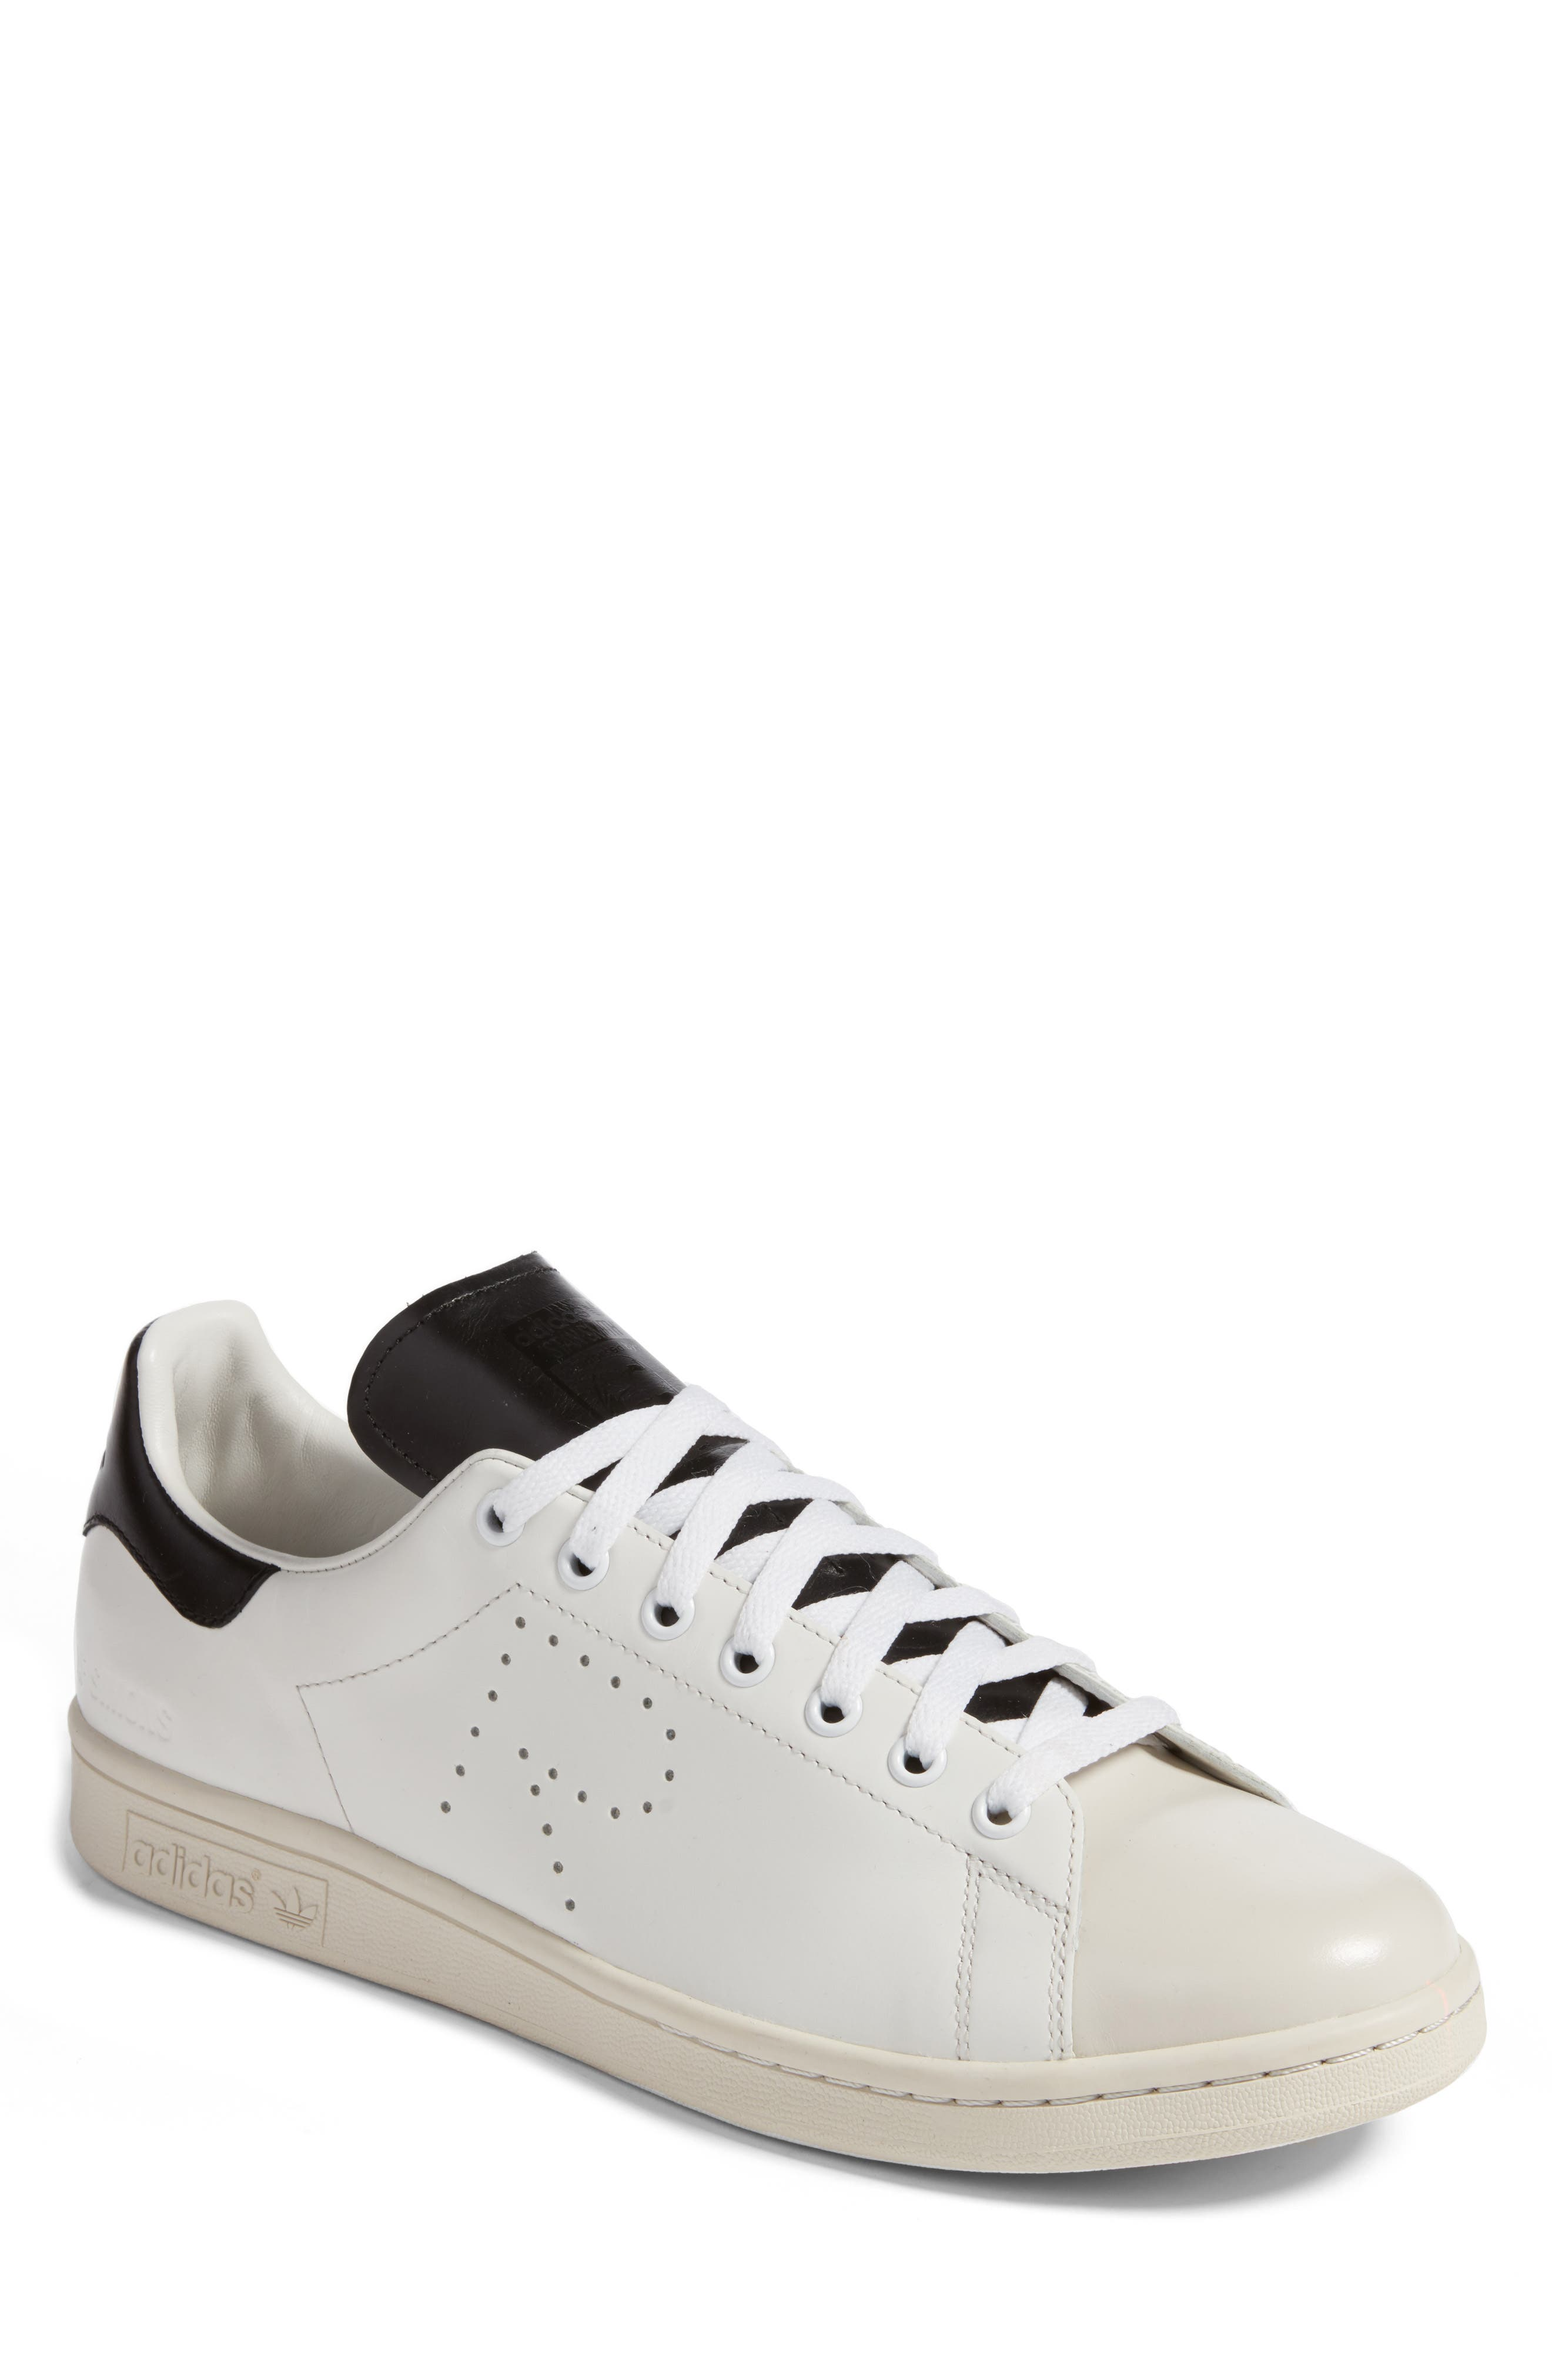 Alternate Image 1 Selected - adidas by Raf Simons Stan Smith Sneaker (Women)